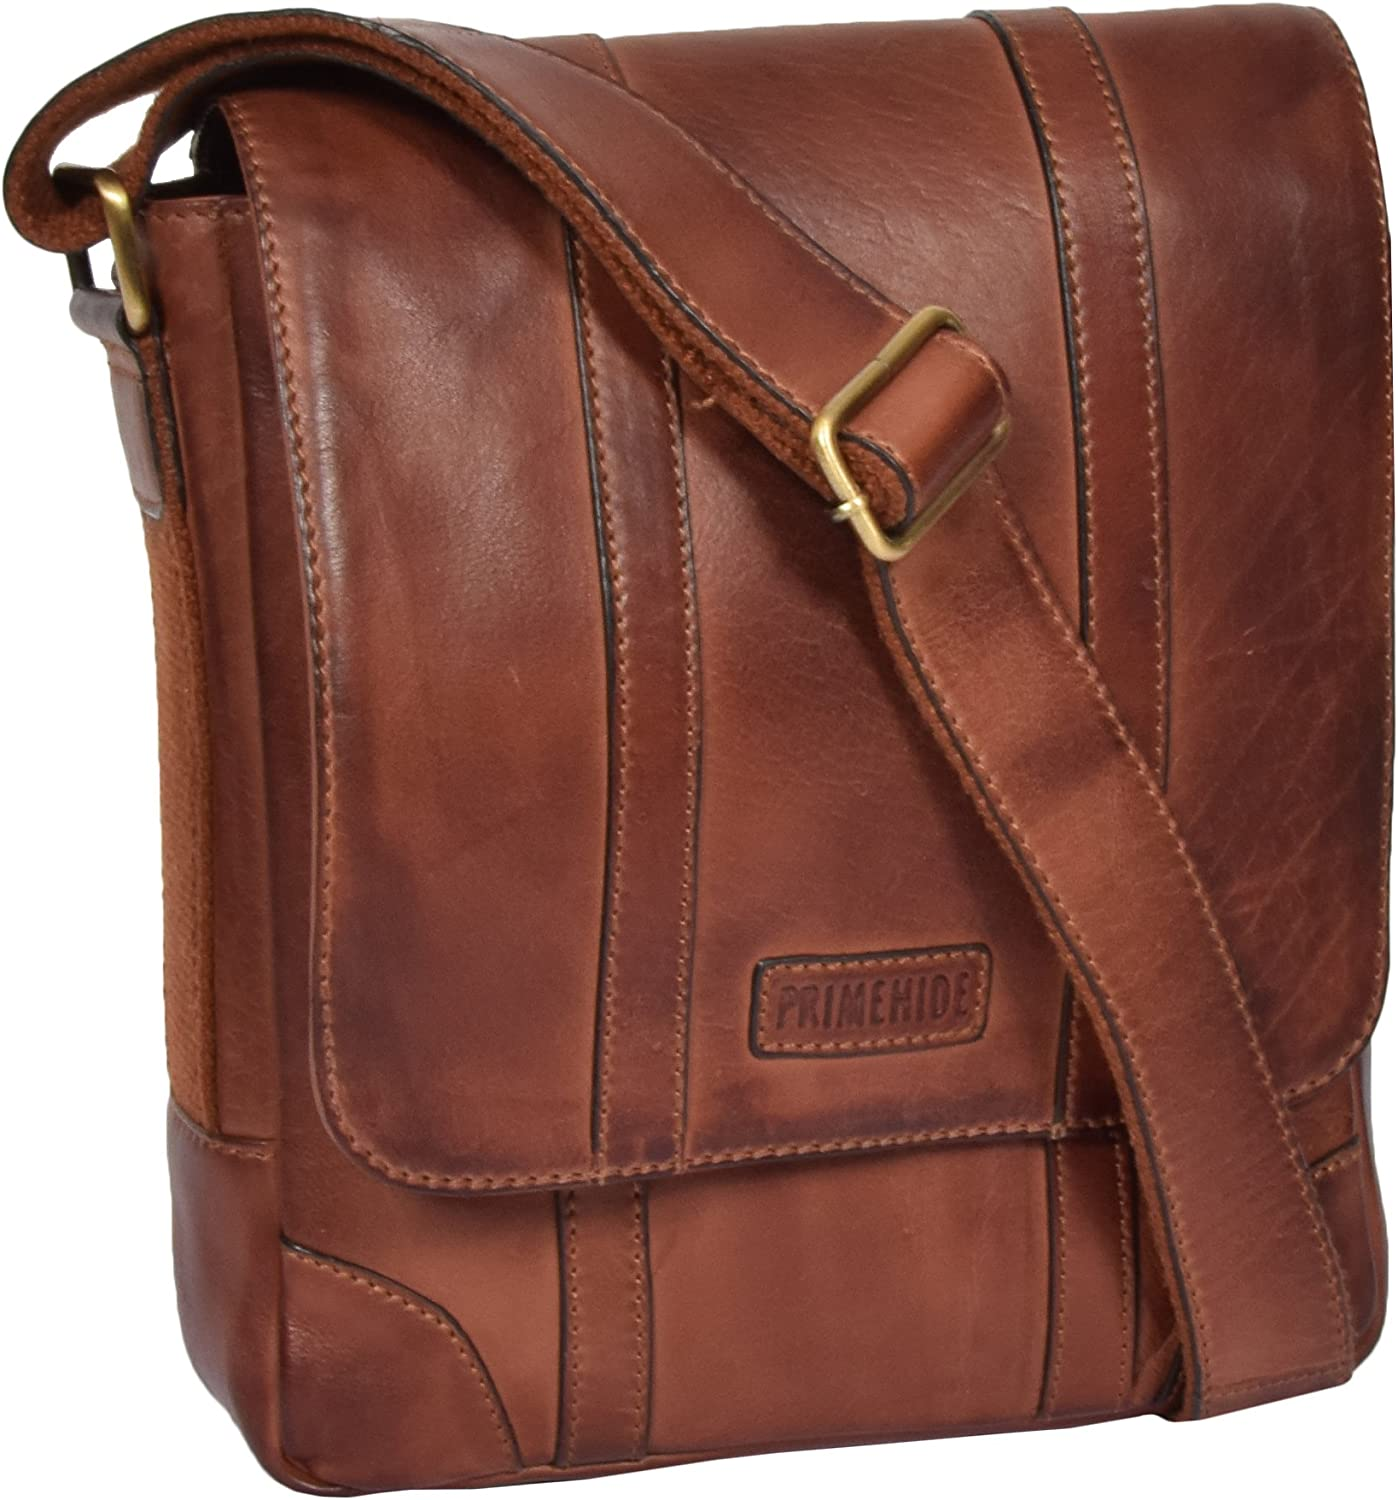 A1 FASHION GOODS Mens Real Leather Two Tone Designer Cross Body Vintage Tan Casual Flight Bag Oia